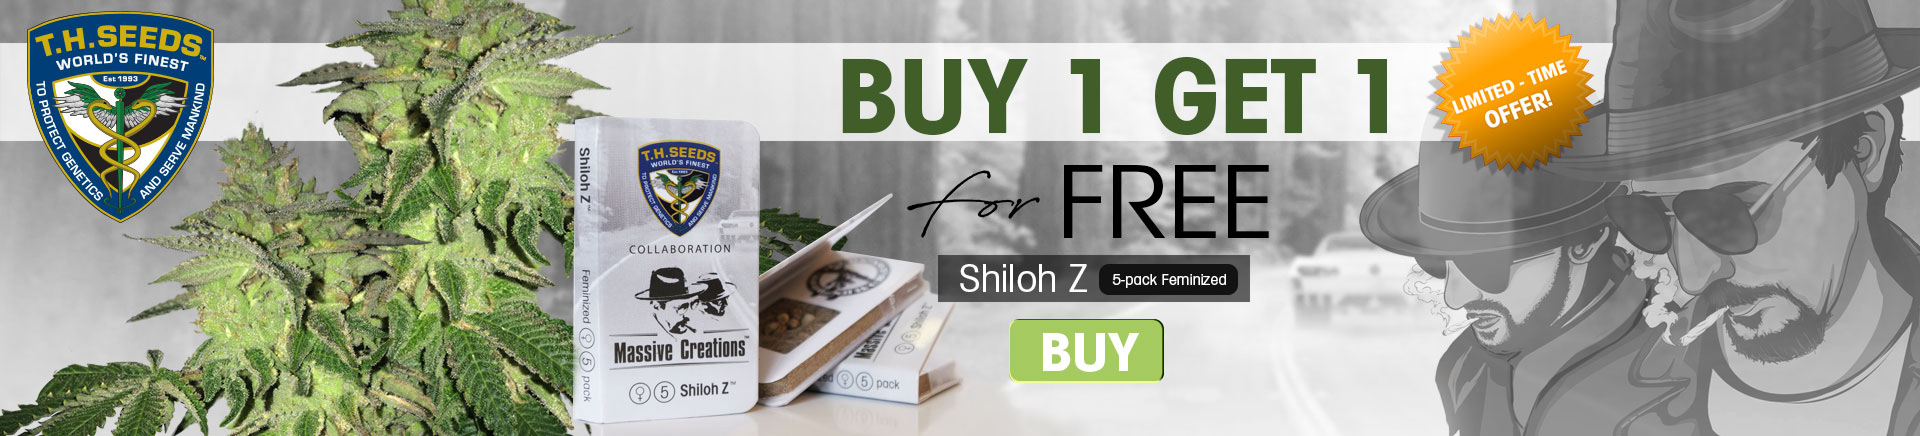 TH Seeds Shiloh-Z buy one get one frewe